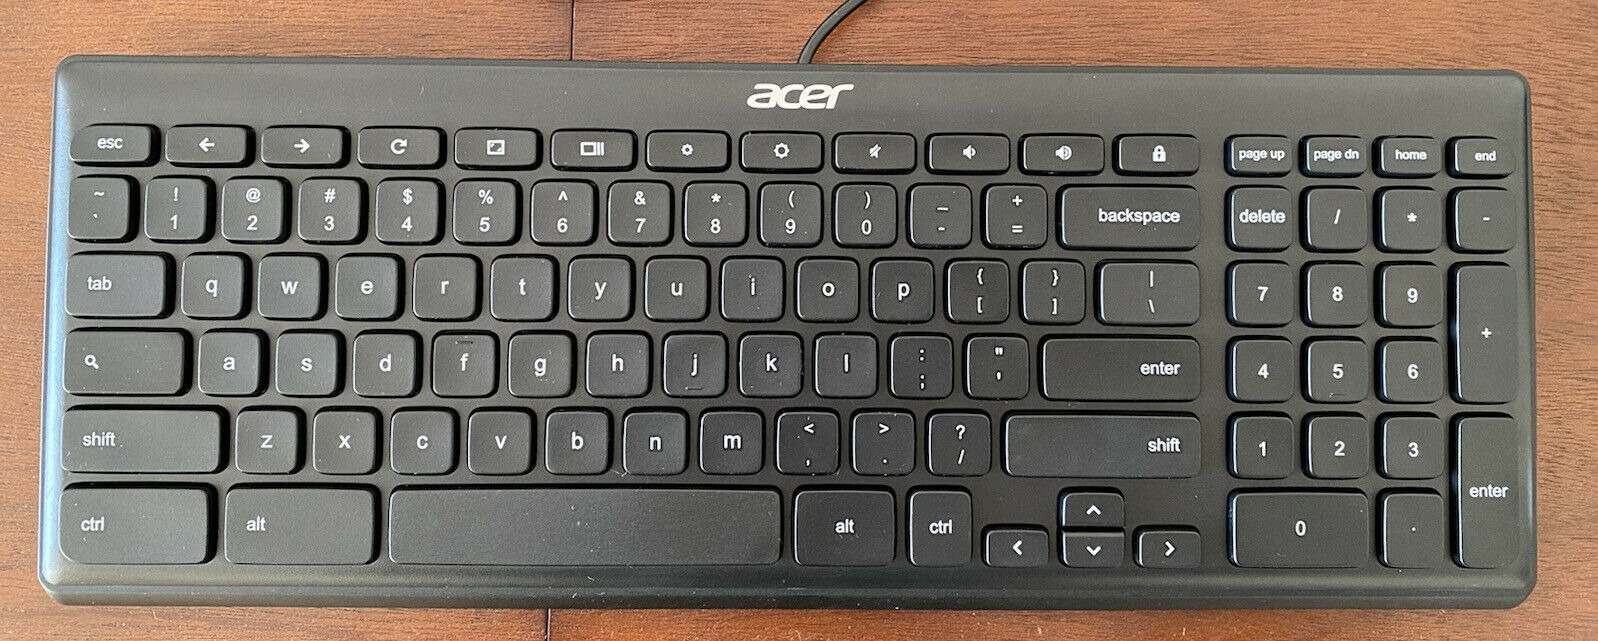 keyboard ACER KB69211 100% Geniune Stock usb wired slim and smart size